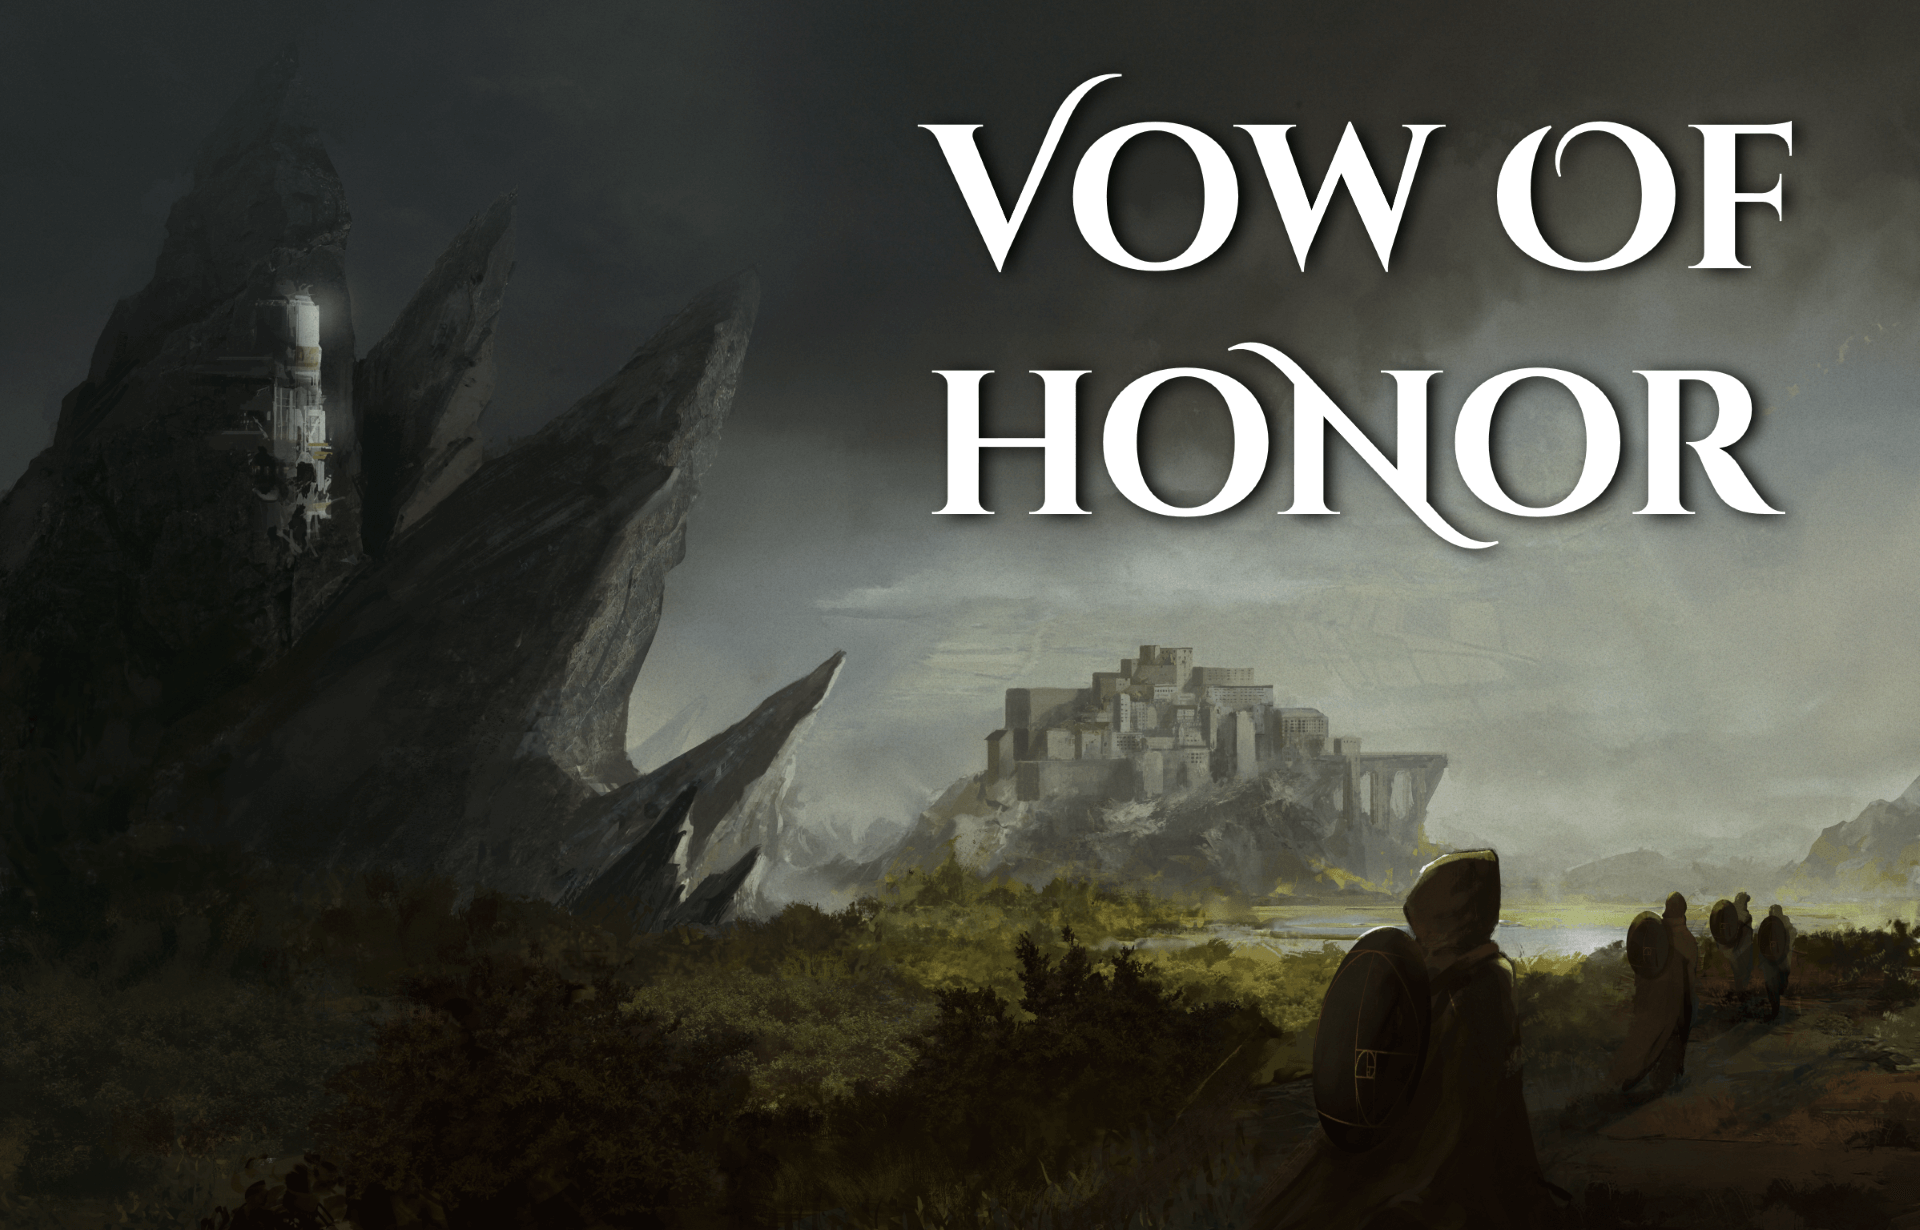 Vow of Honor